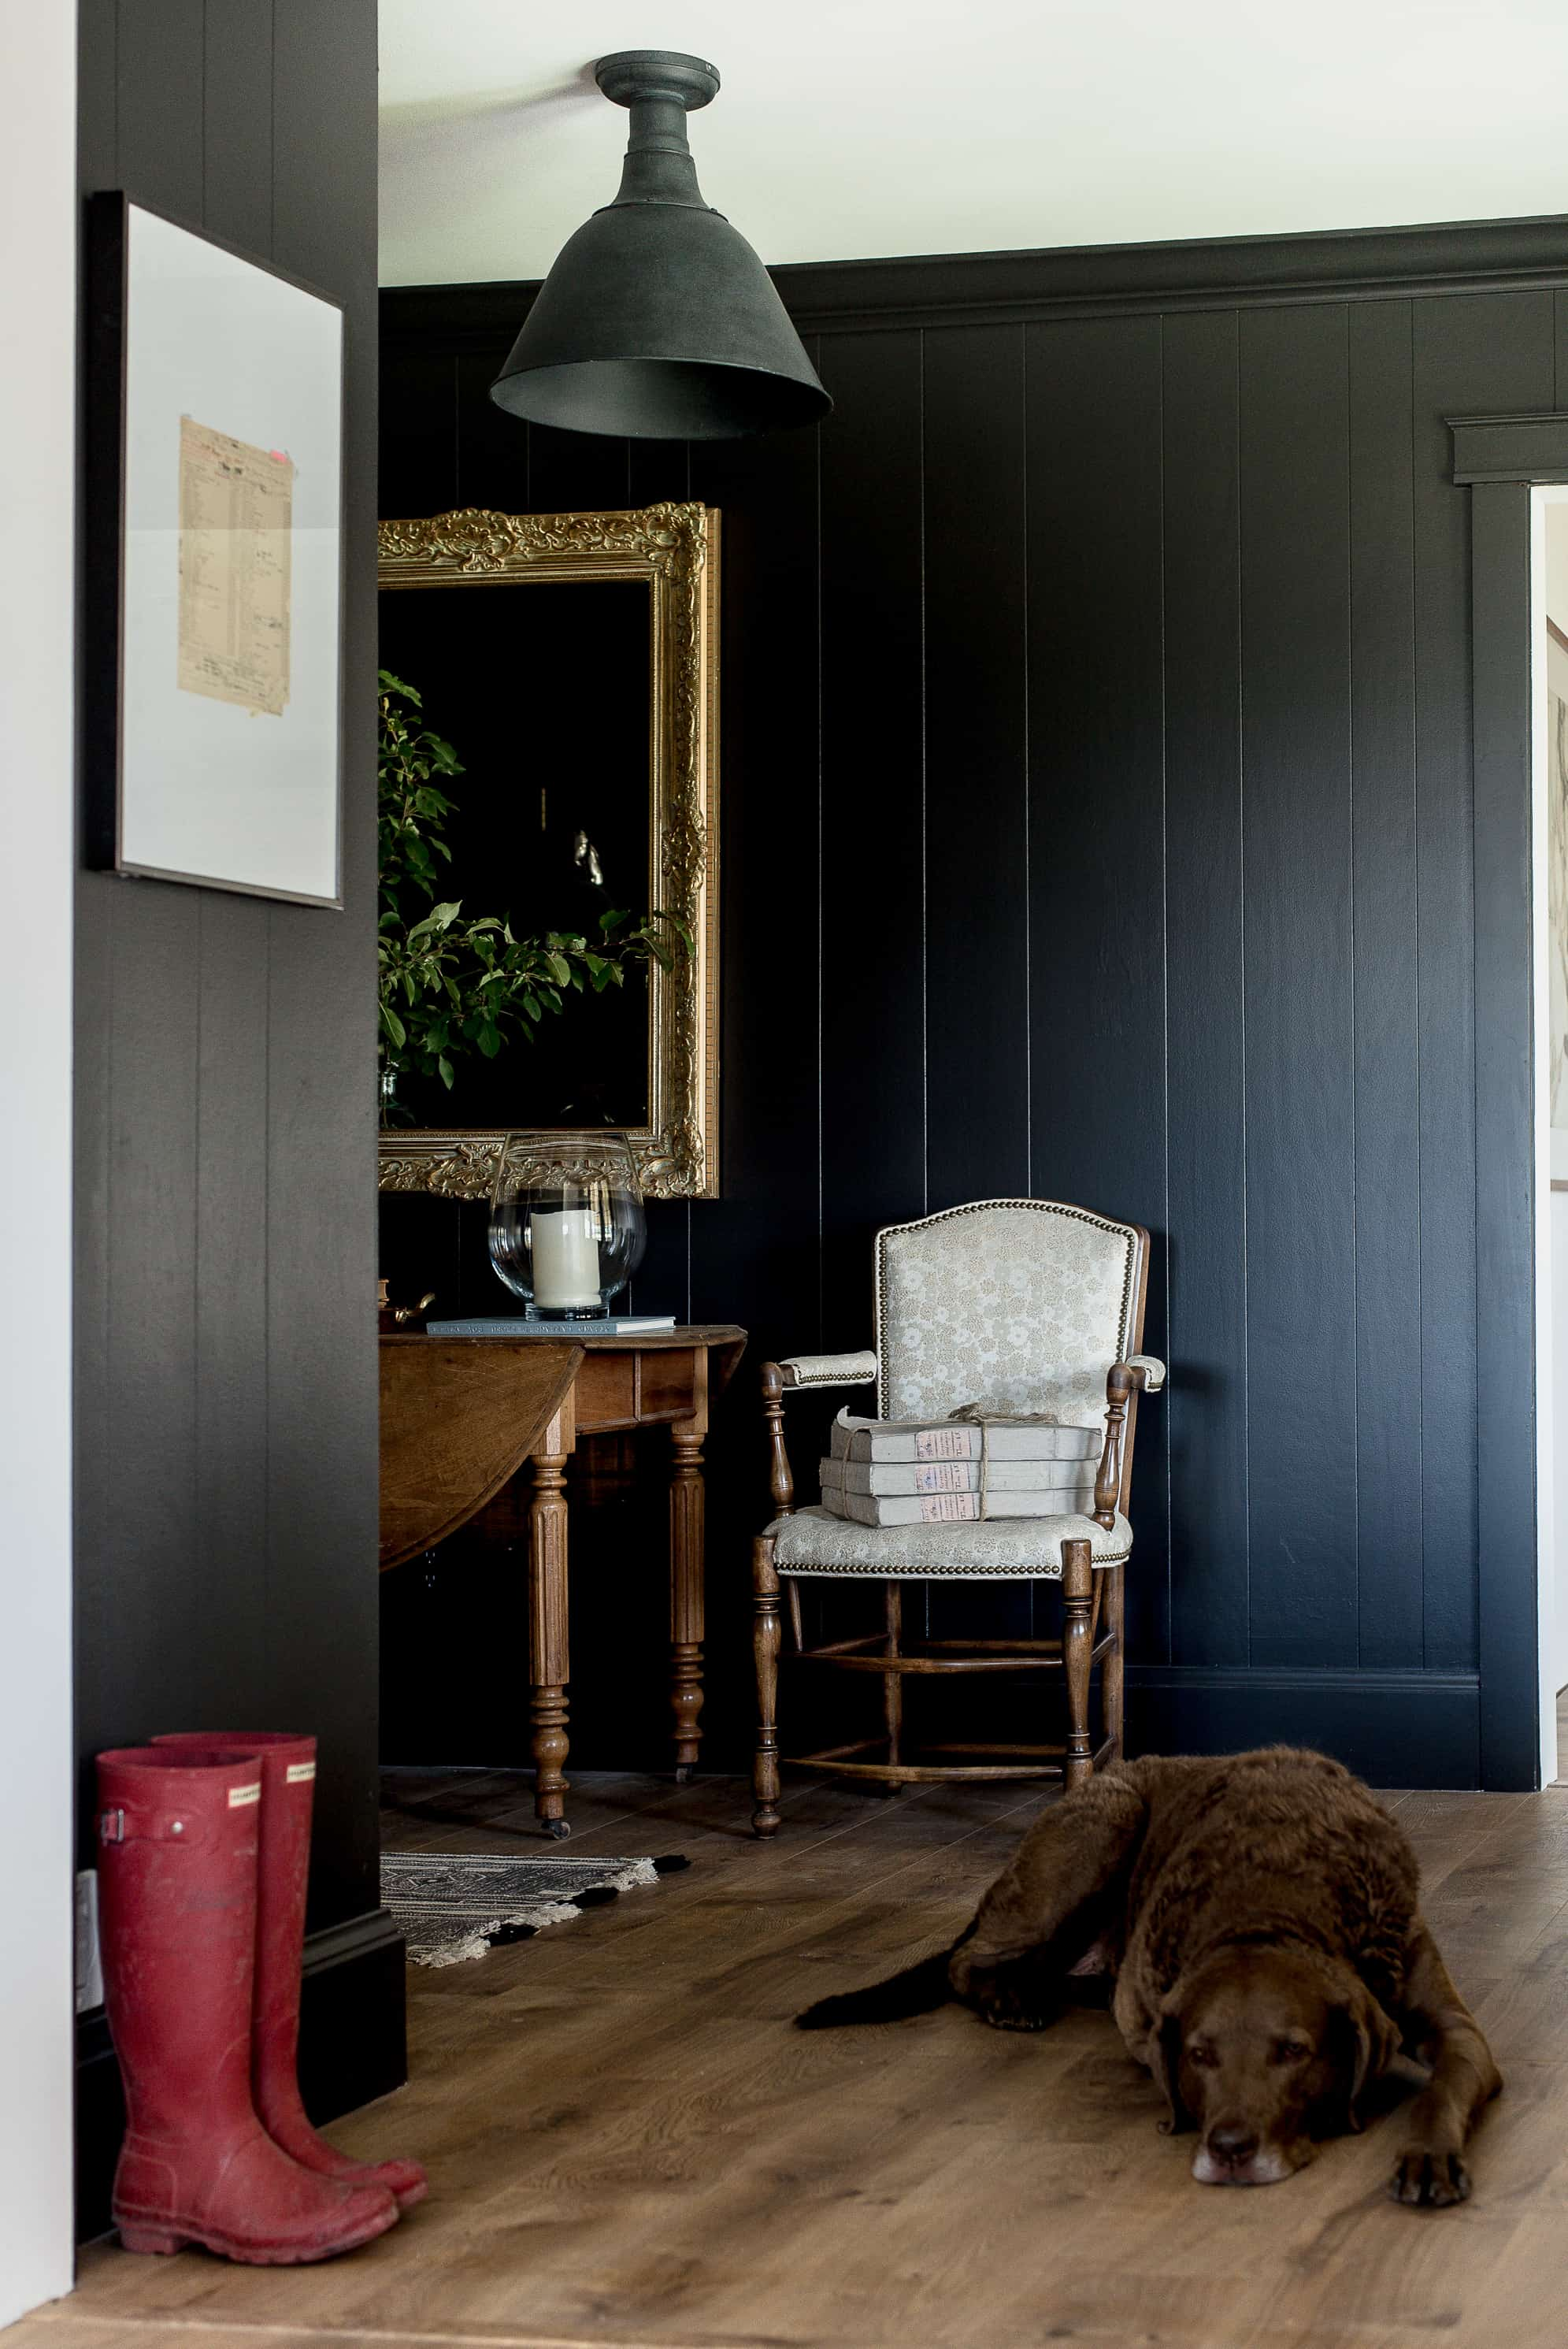 I have been a fan of deep, dark jewel tones for a long time. Actually, one of the first projects my dad and I ever worked on together in my house was simply painting our wood paneled foyer a deep eggplant color. His favorite color is purple, and he is also great at painting, so it was a win-win for us.